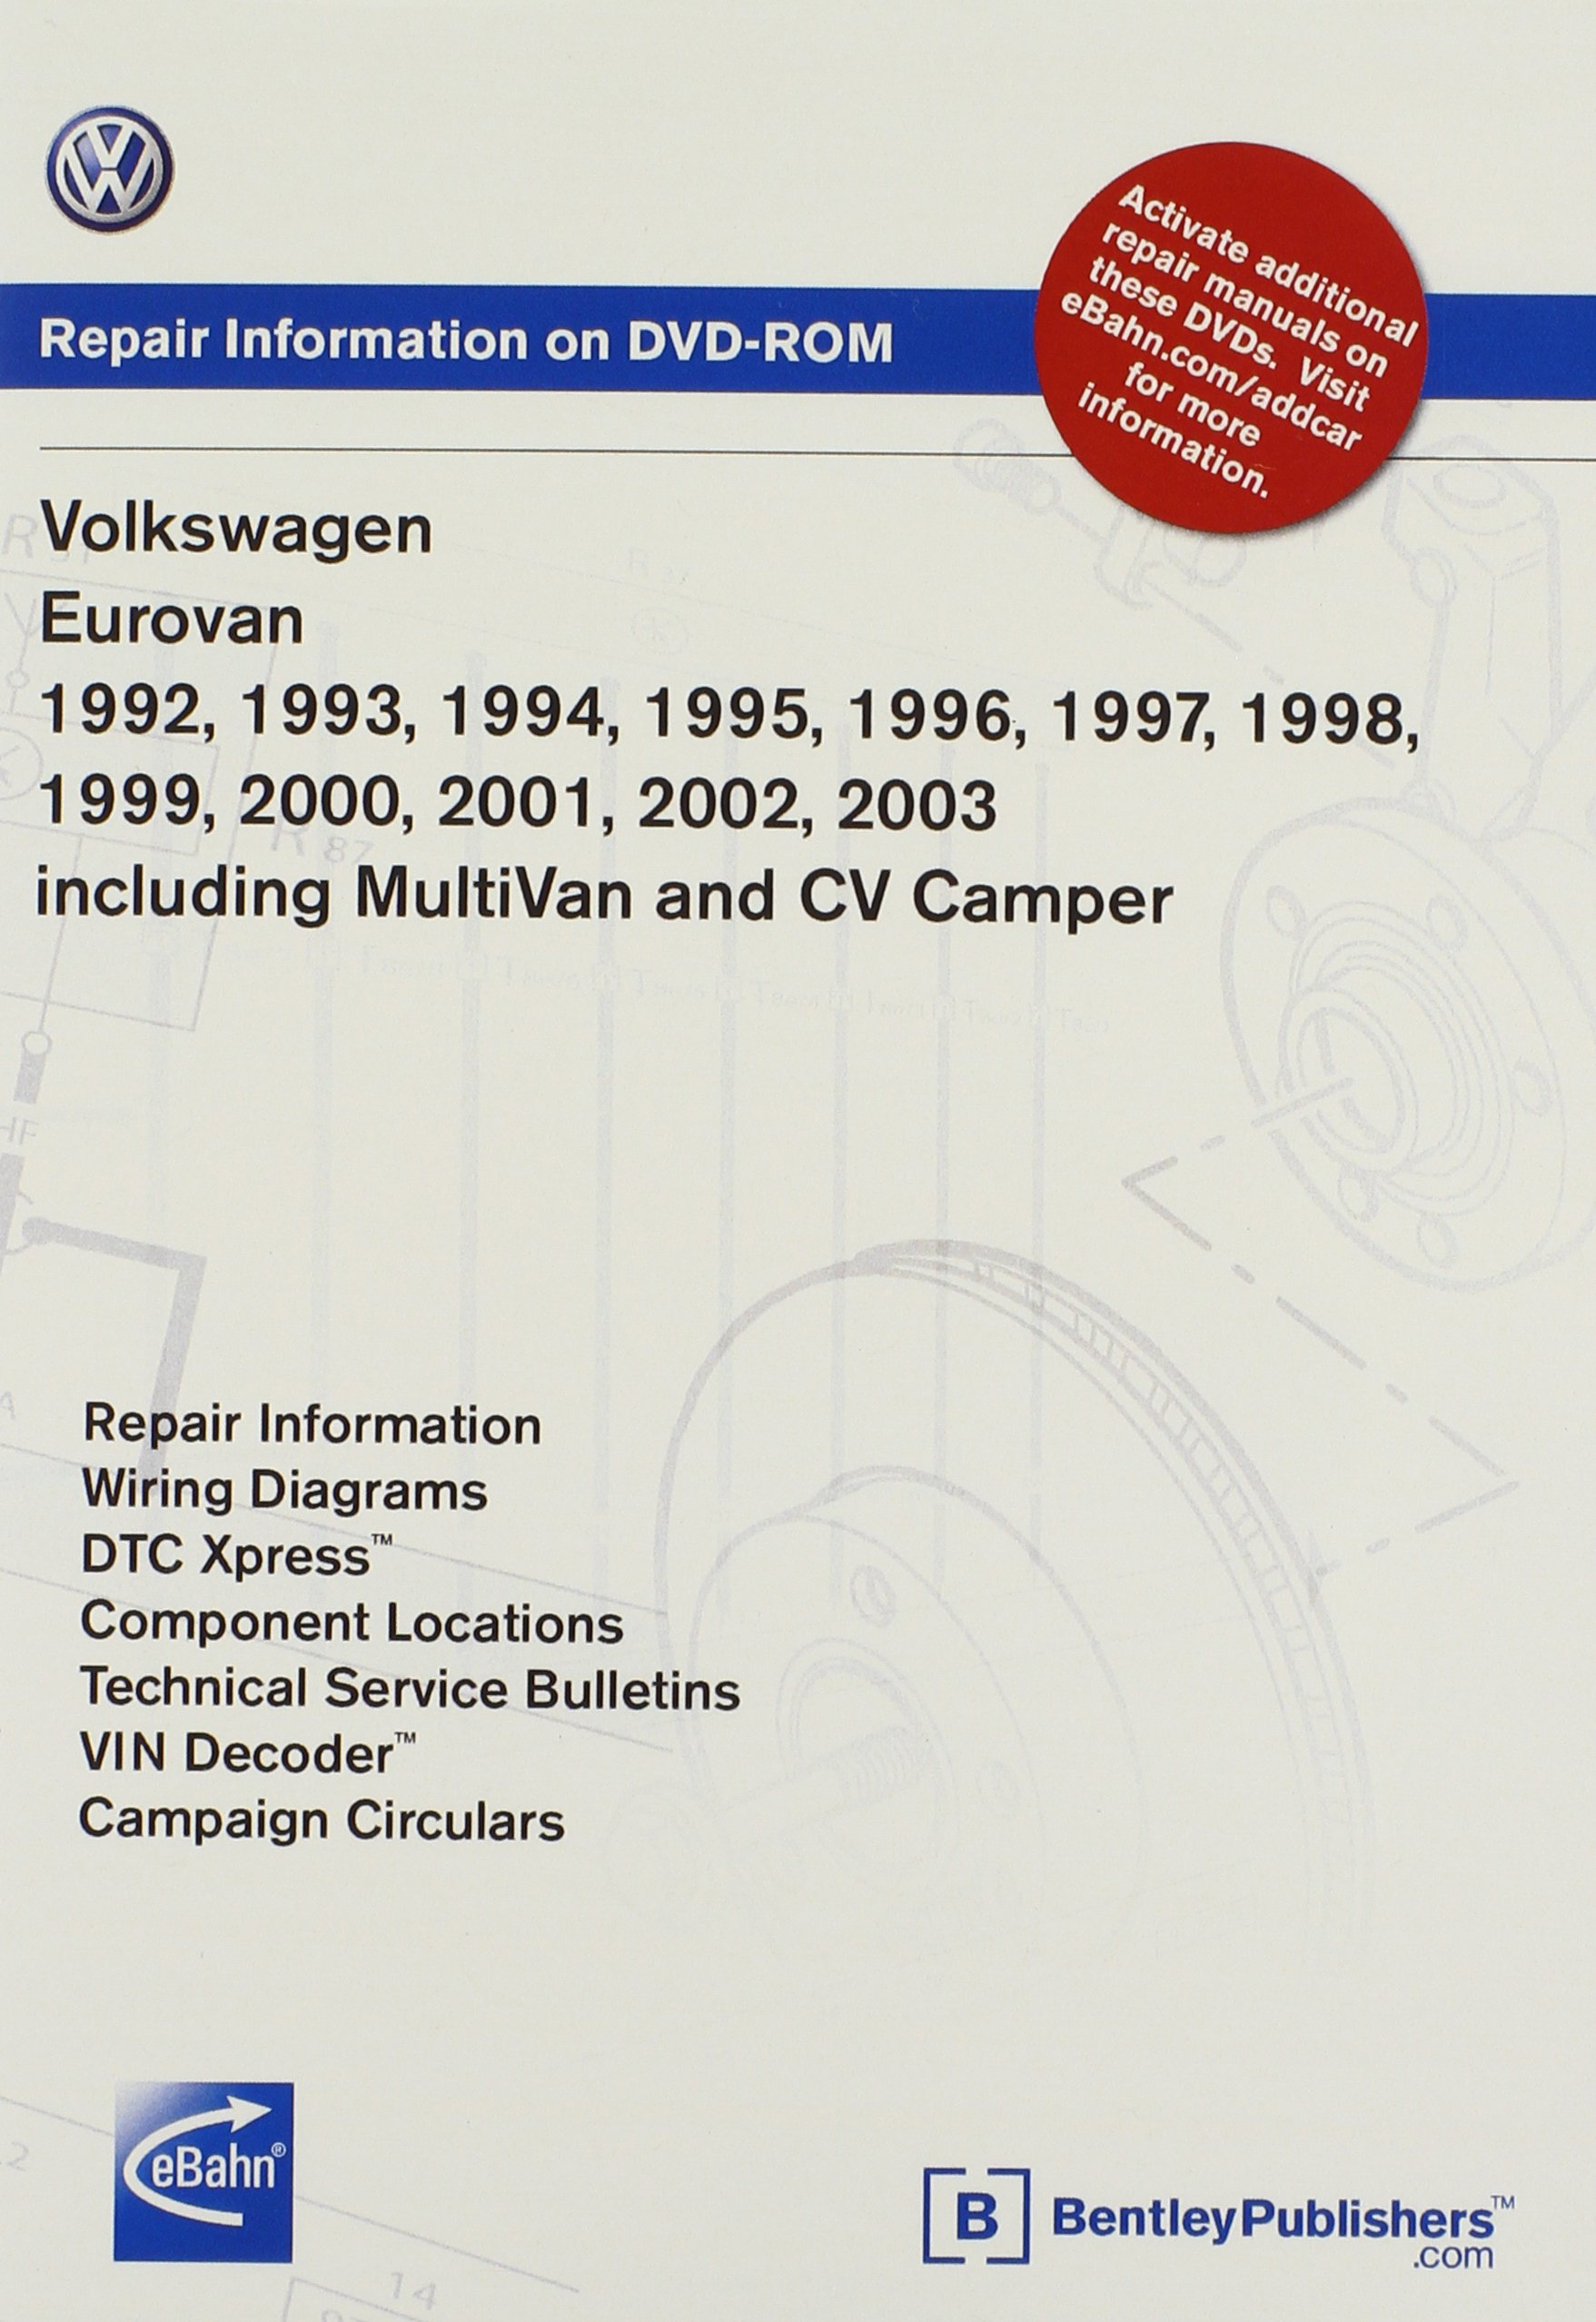 Volkswagen Eurovan 1992 1993 1994 1995 1996 1997 1998 1999 Wiring Diagram 2000 2001 2002 2003 Repair Manual On Dvd Rom Including Multivan And Cv Camper